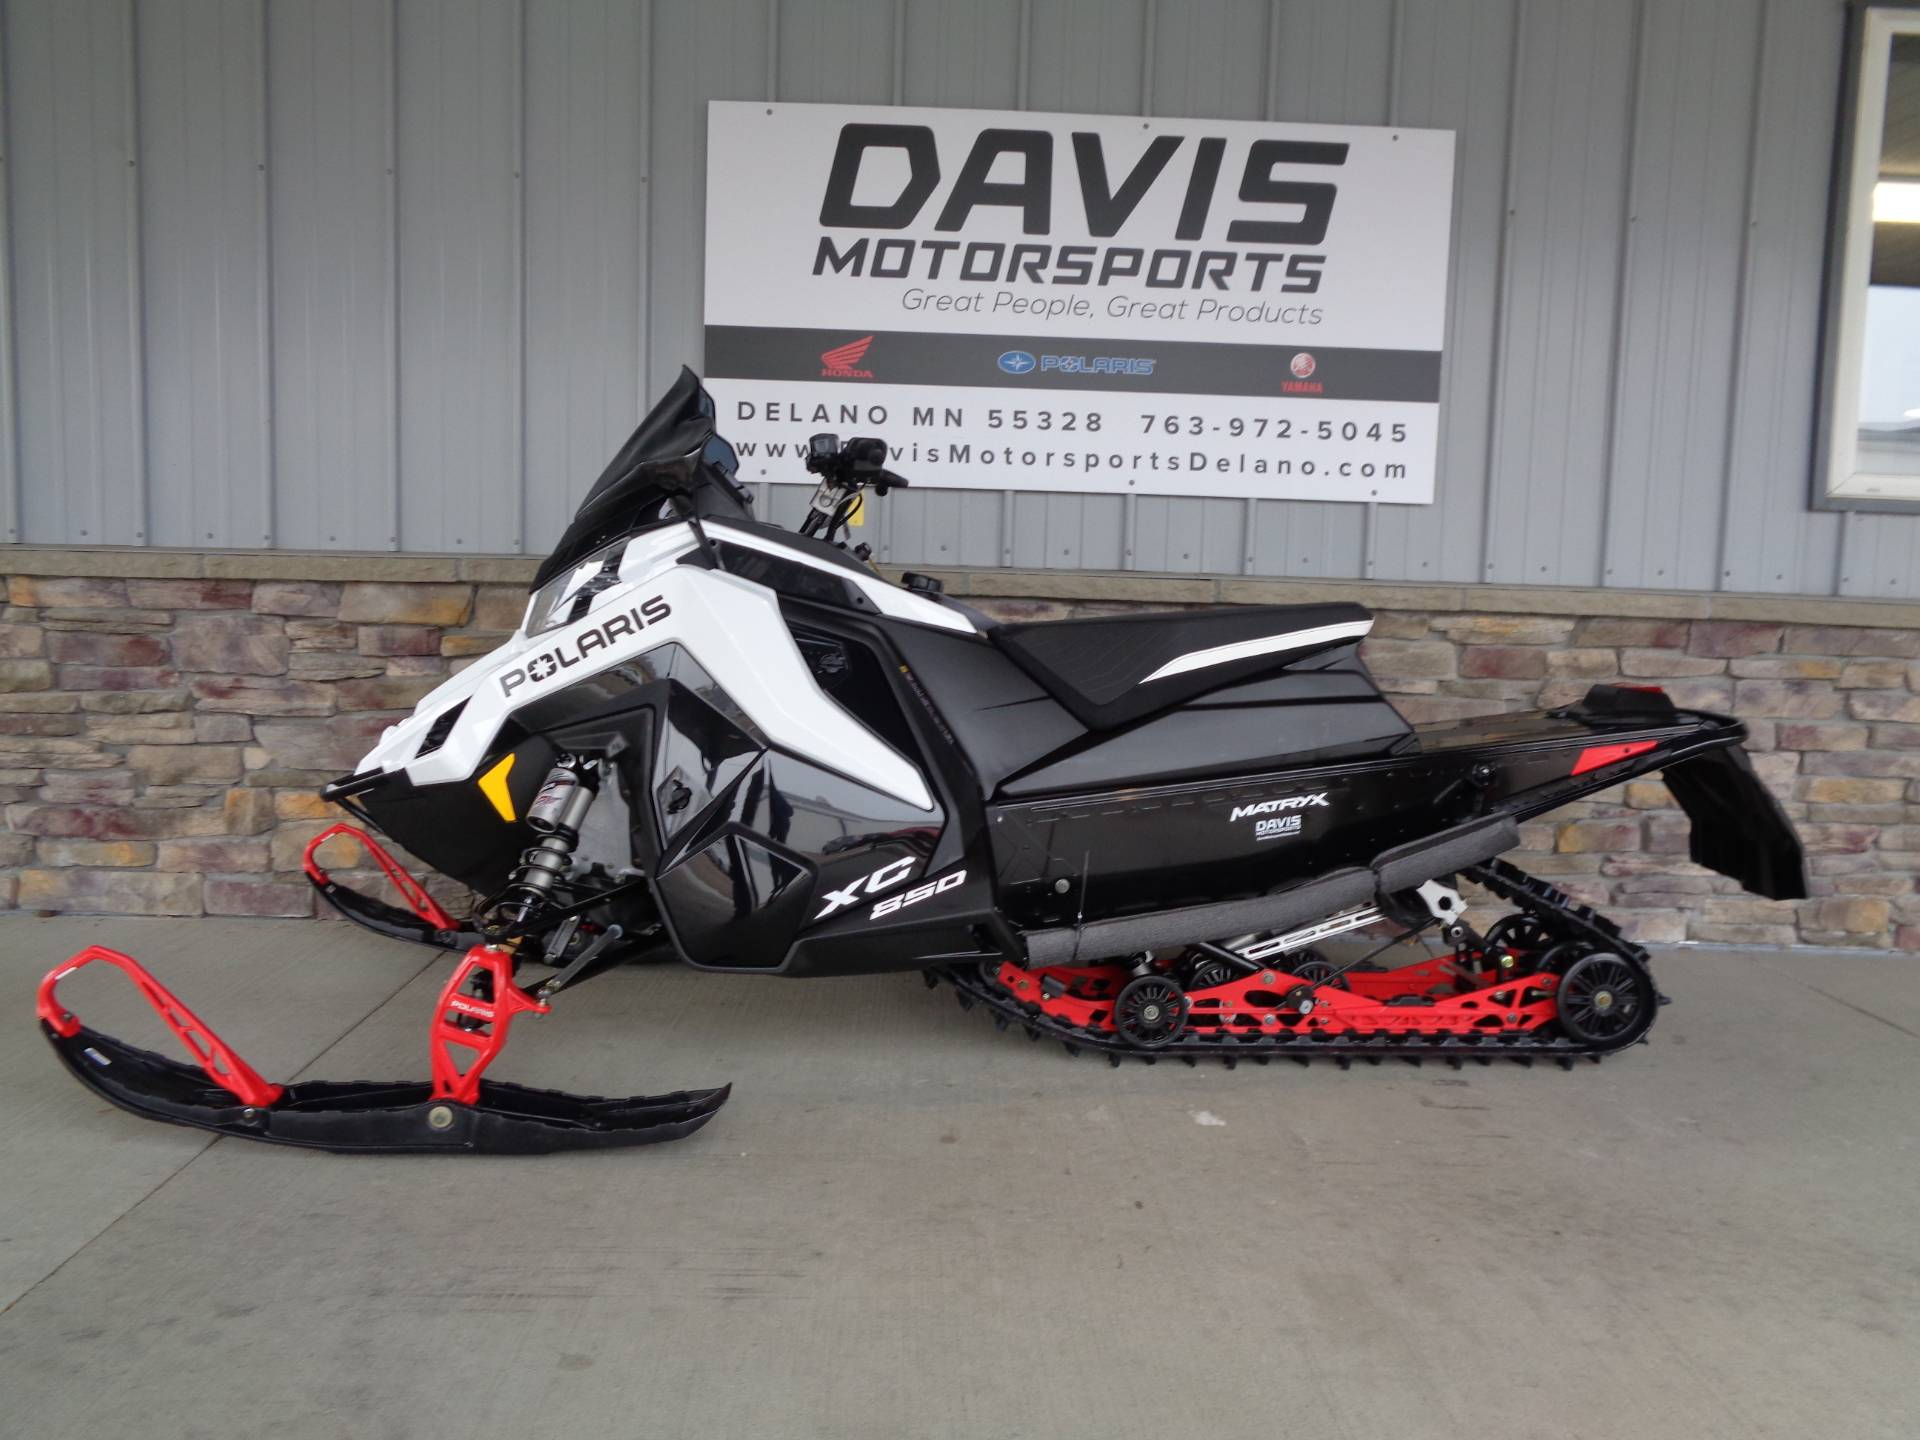 2021 Polaris 850 Indy XC 129 Launch Edition Factory Choice in Delano, Minnesota - Photo 2